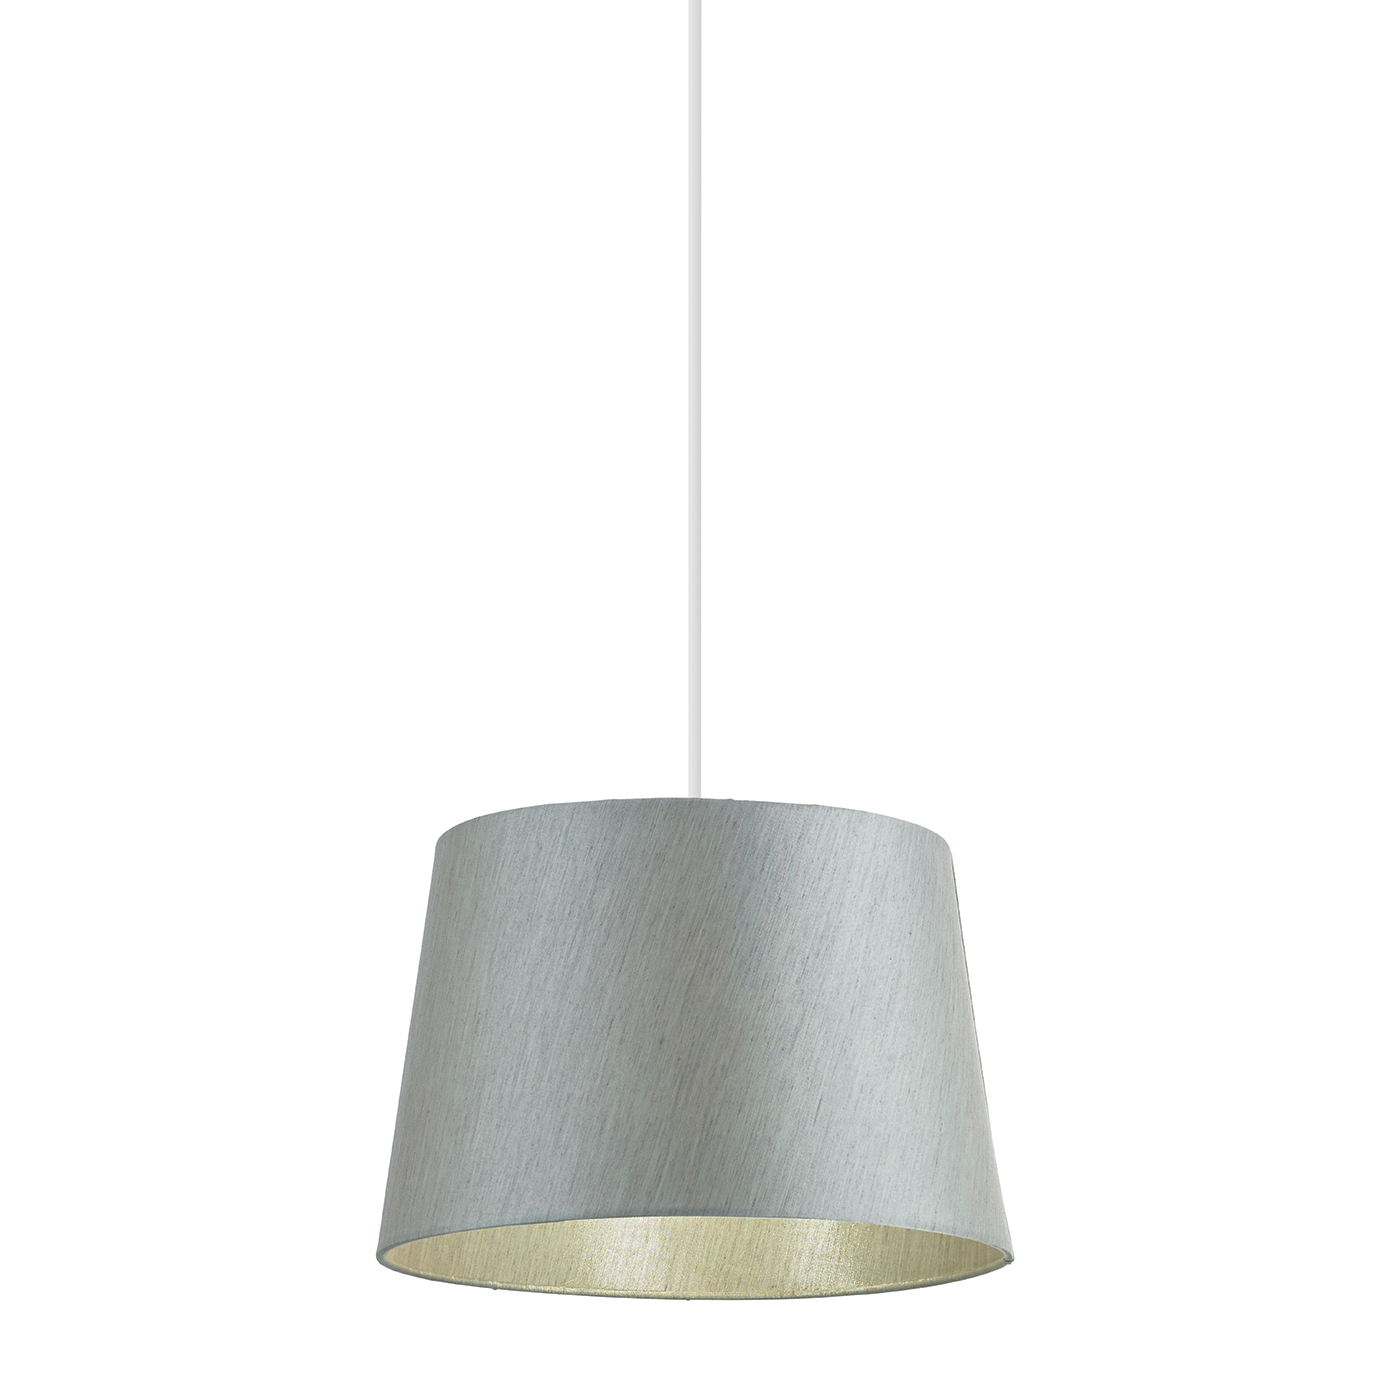 Endon Cordelia lampshade 12 inch Silver grey faux silk 200mm H x 305mm D max.